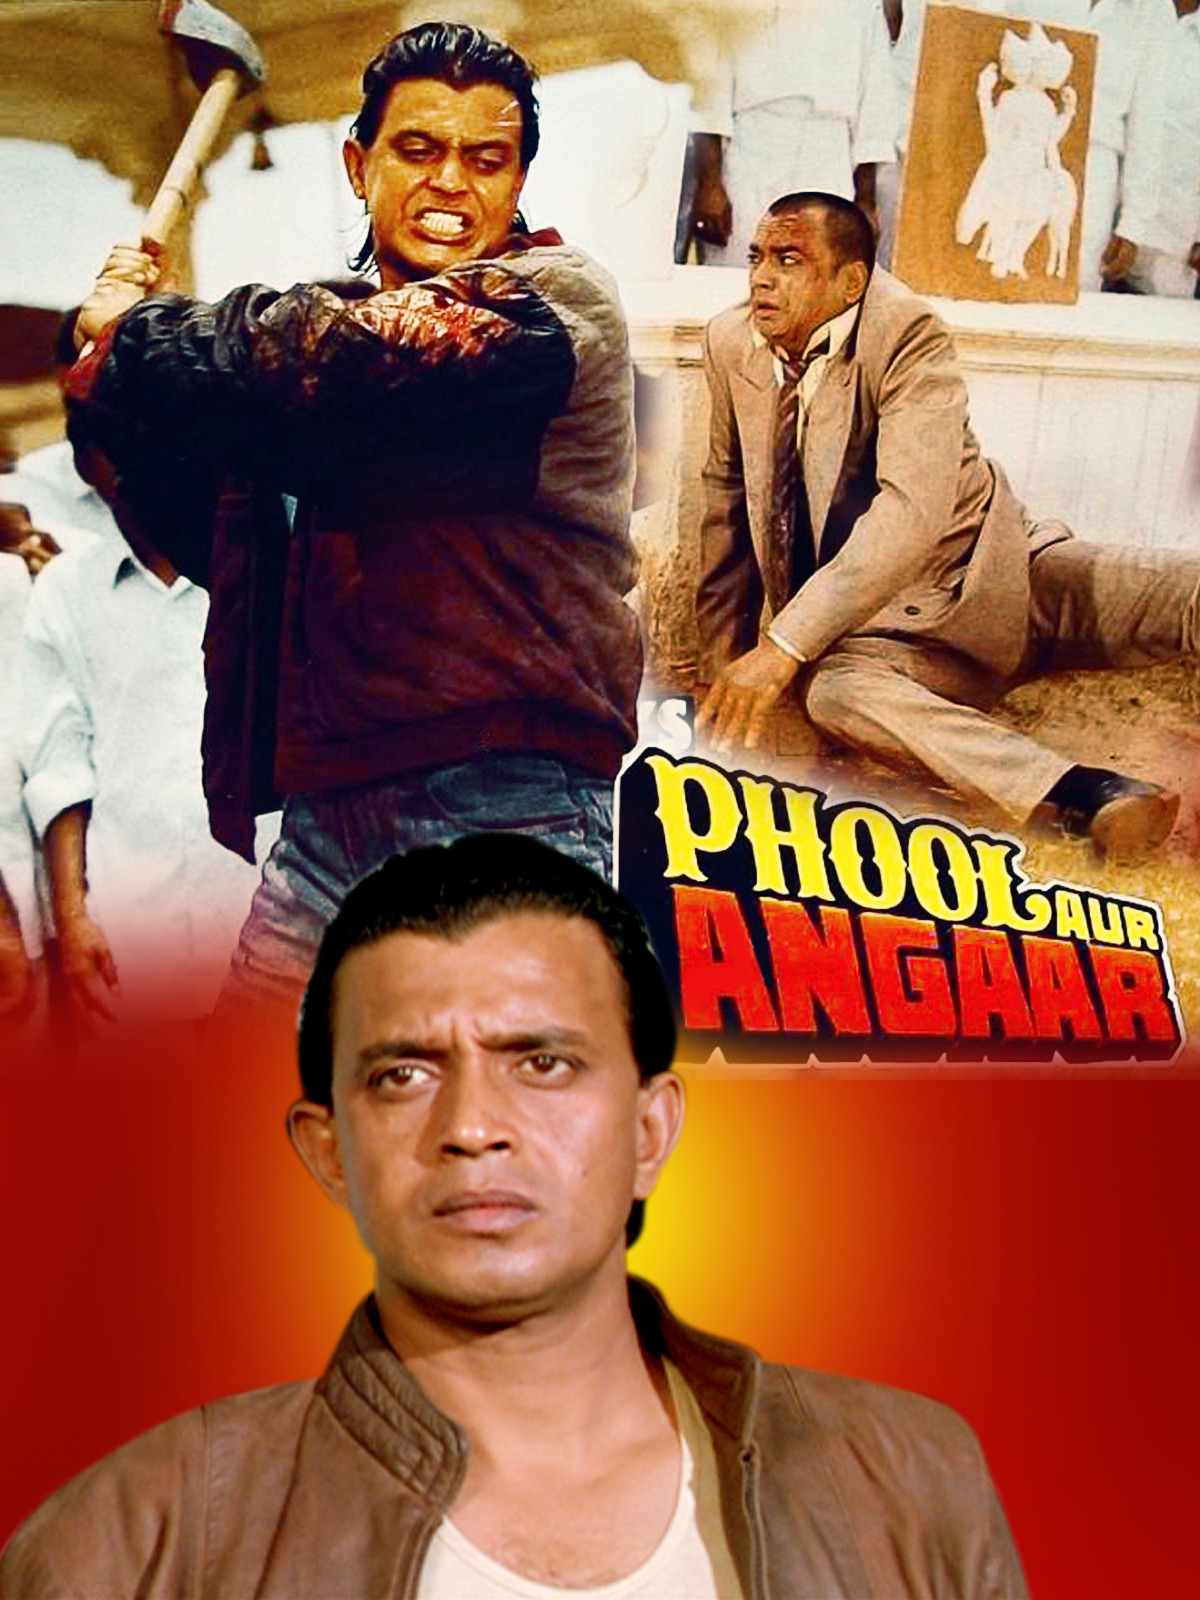 Phool Aur Angaar Box Office Collection till Now | Box Collection - Bollywood  Hungama